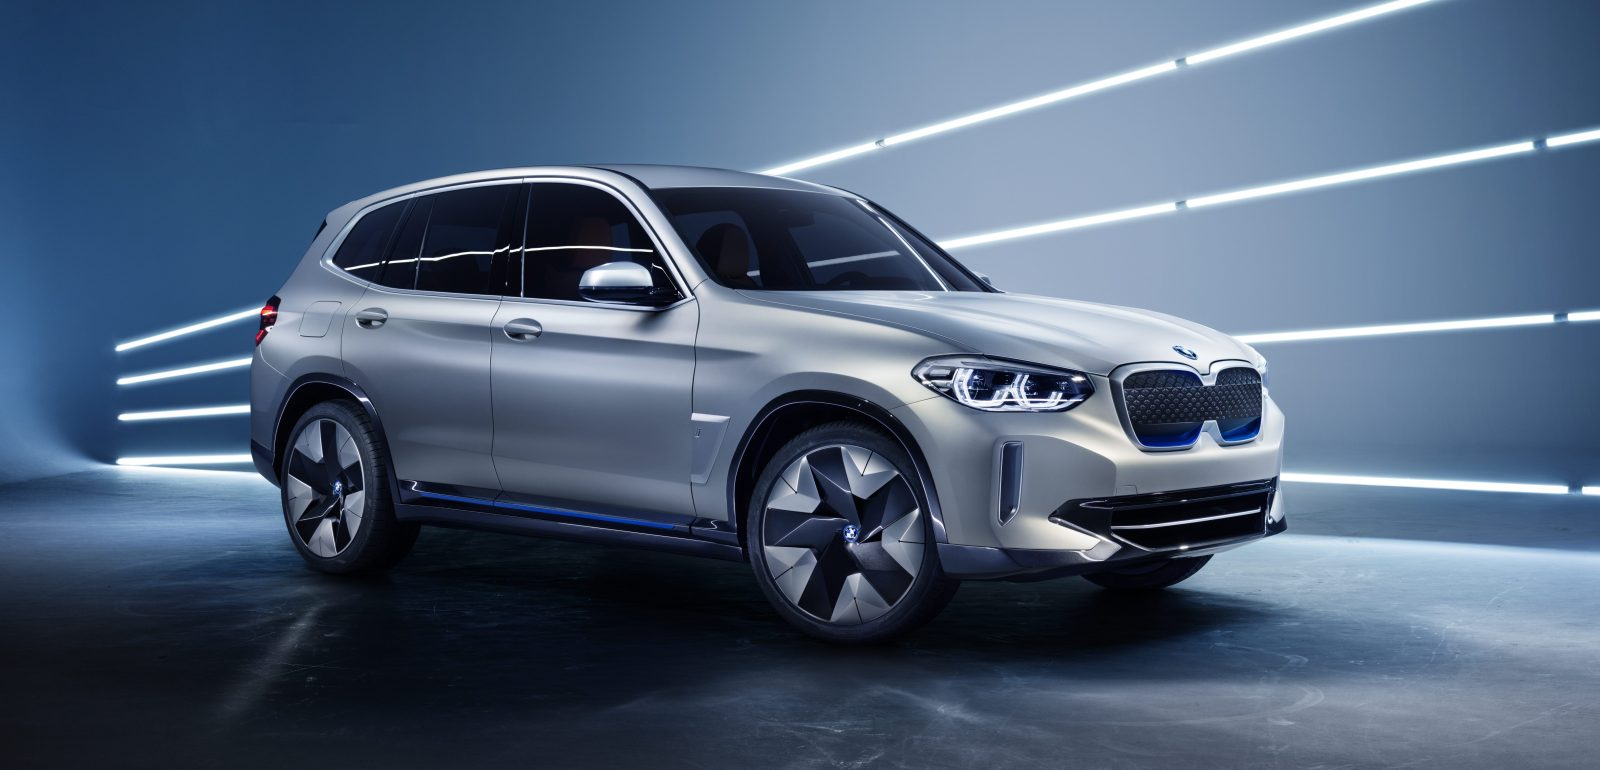 Bmw Unveils New All Electric Ix3 Suv With 250 Miles Of Range And 150 Kw Charging